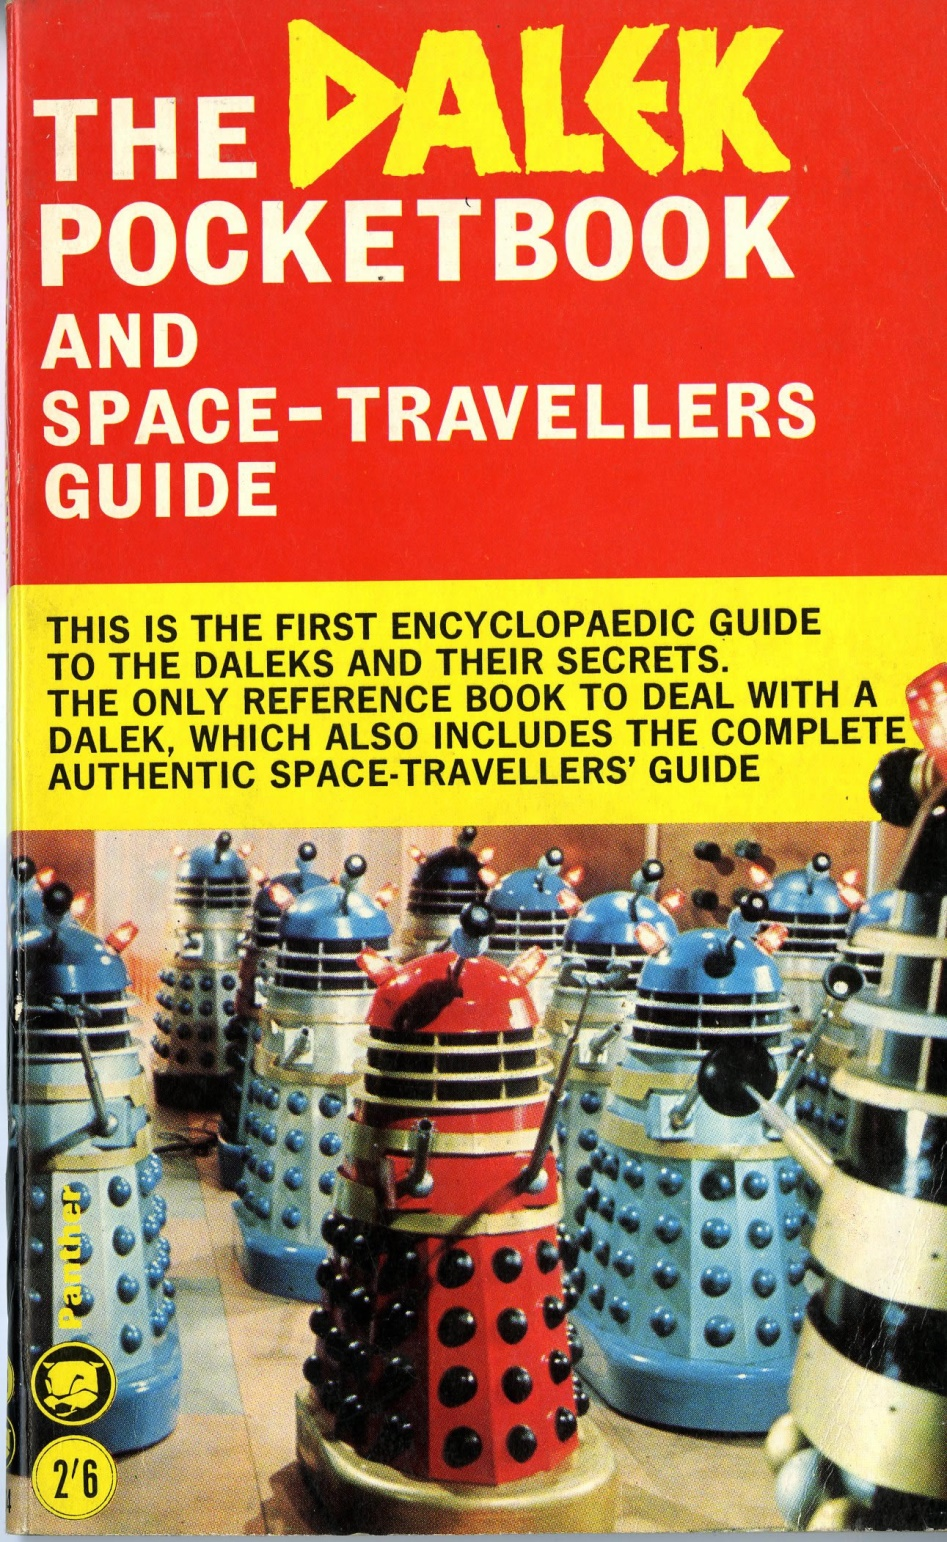 Panther Books Ltd., in association with Souvenir Press Ltd., The Dalek Pocketbook and Space-Travellers Guide